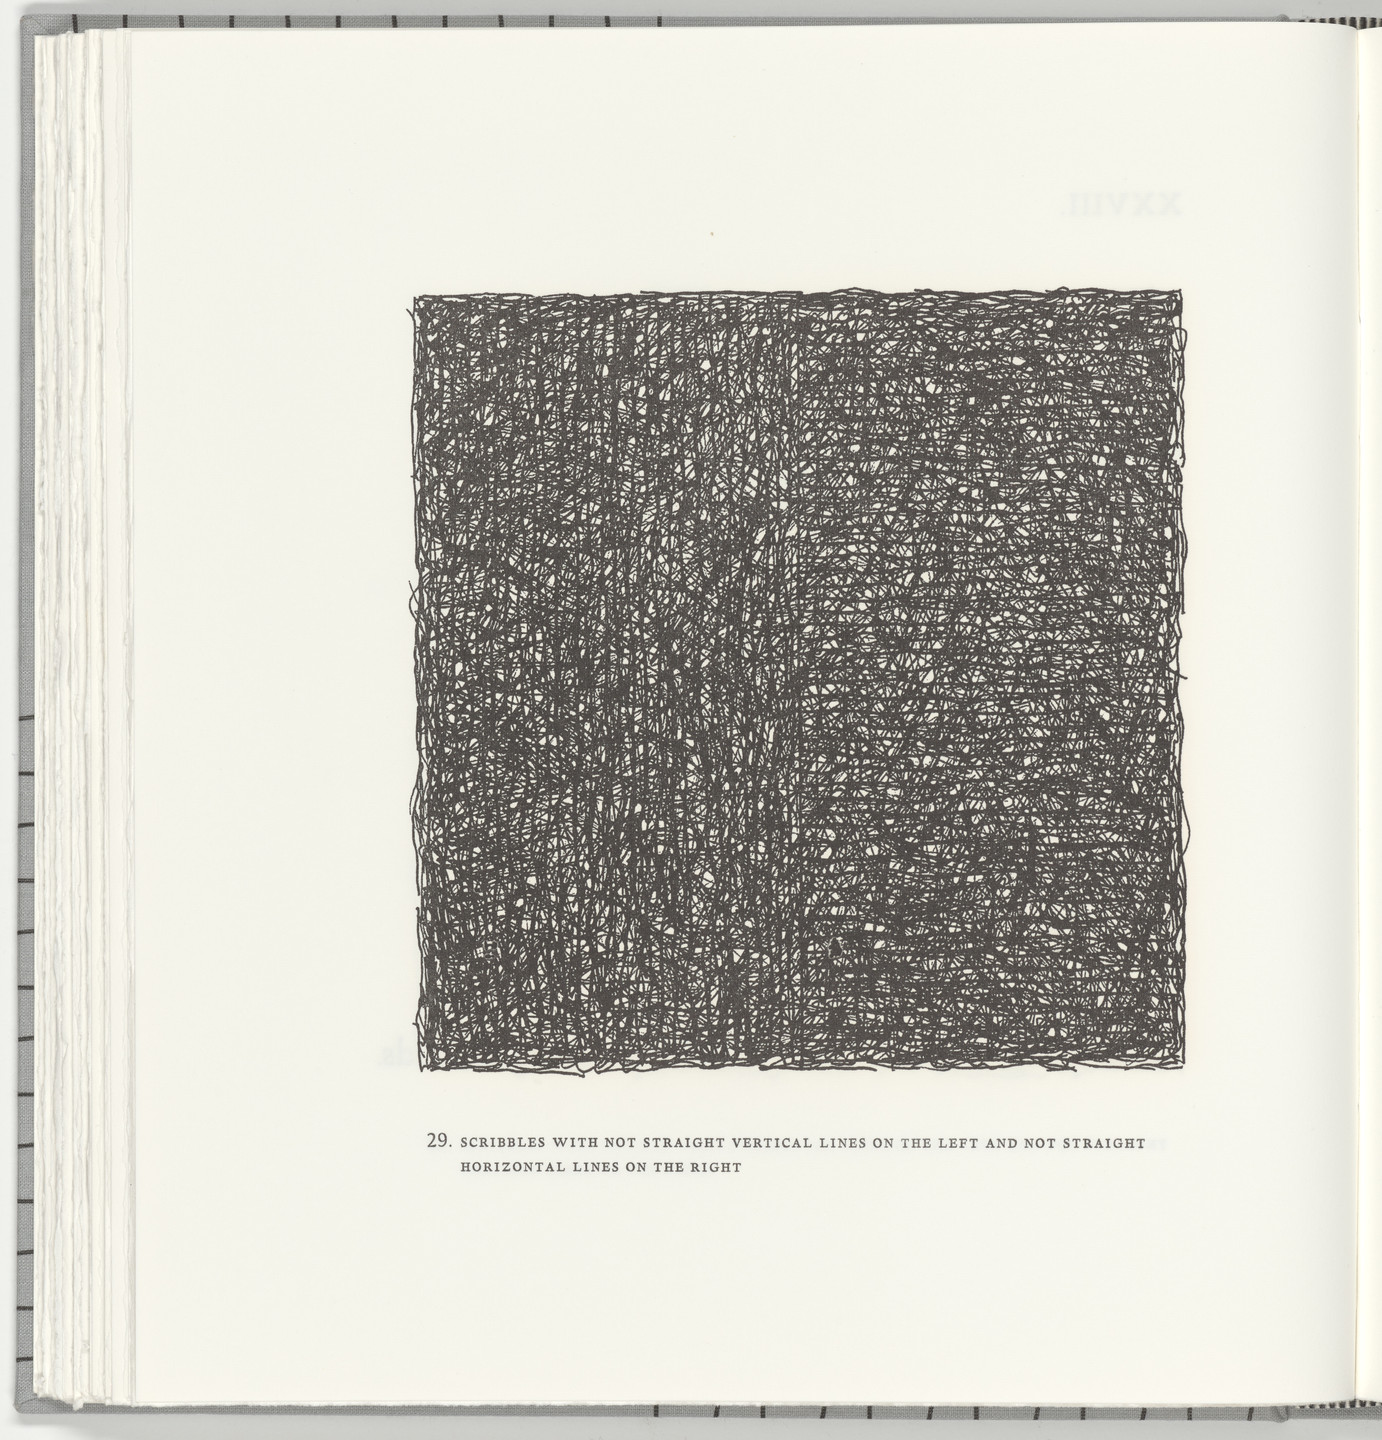 Sol LeWitt. Scribbles with Not Straight Vertical Lines on the Left and Not Straight Horizontal Lines on the Right (plate 29) from Squarings. 2003